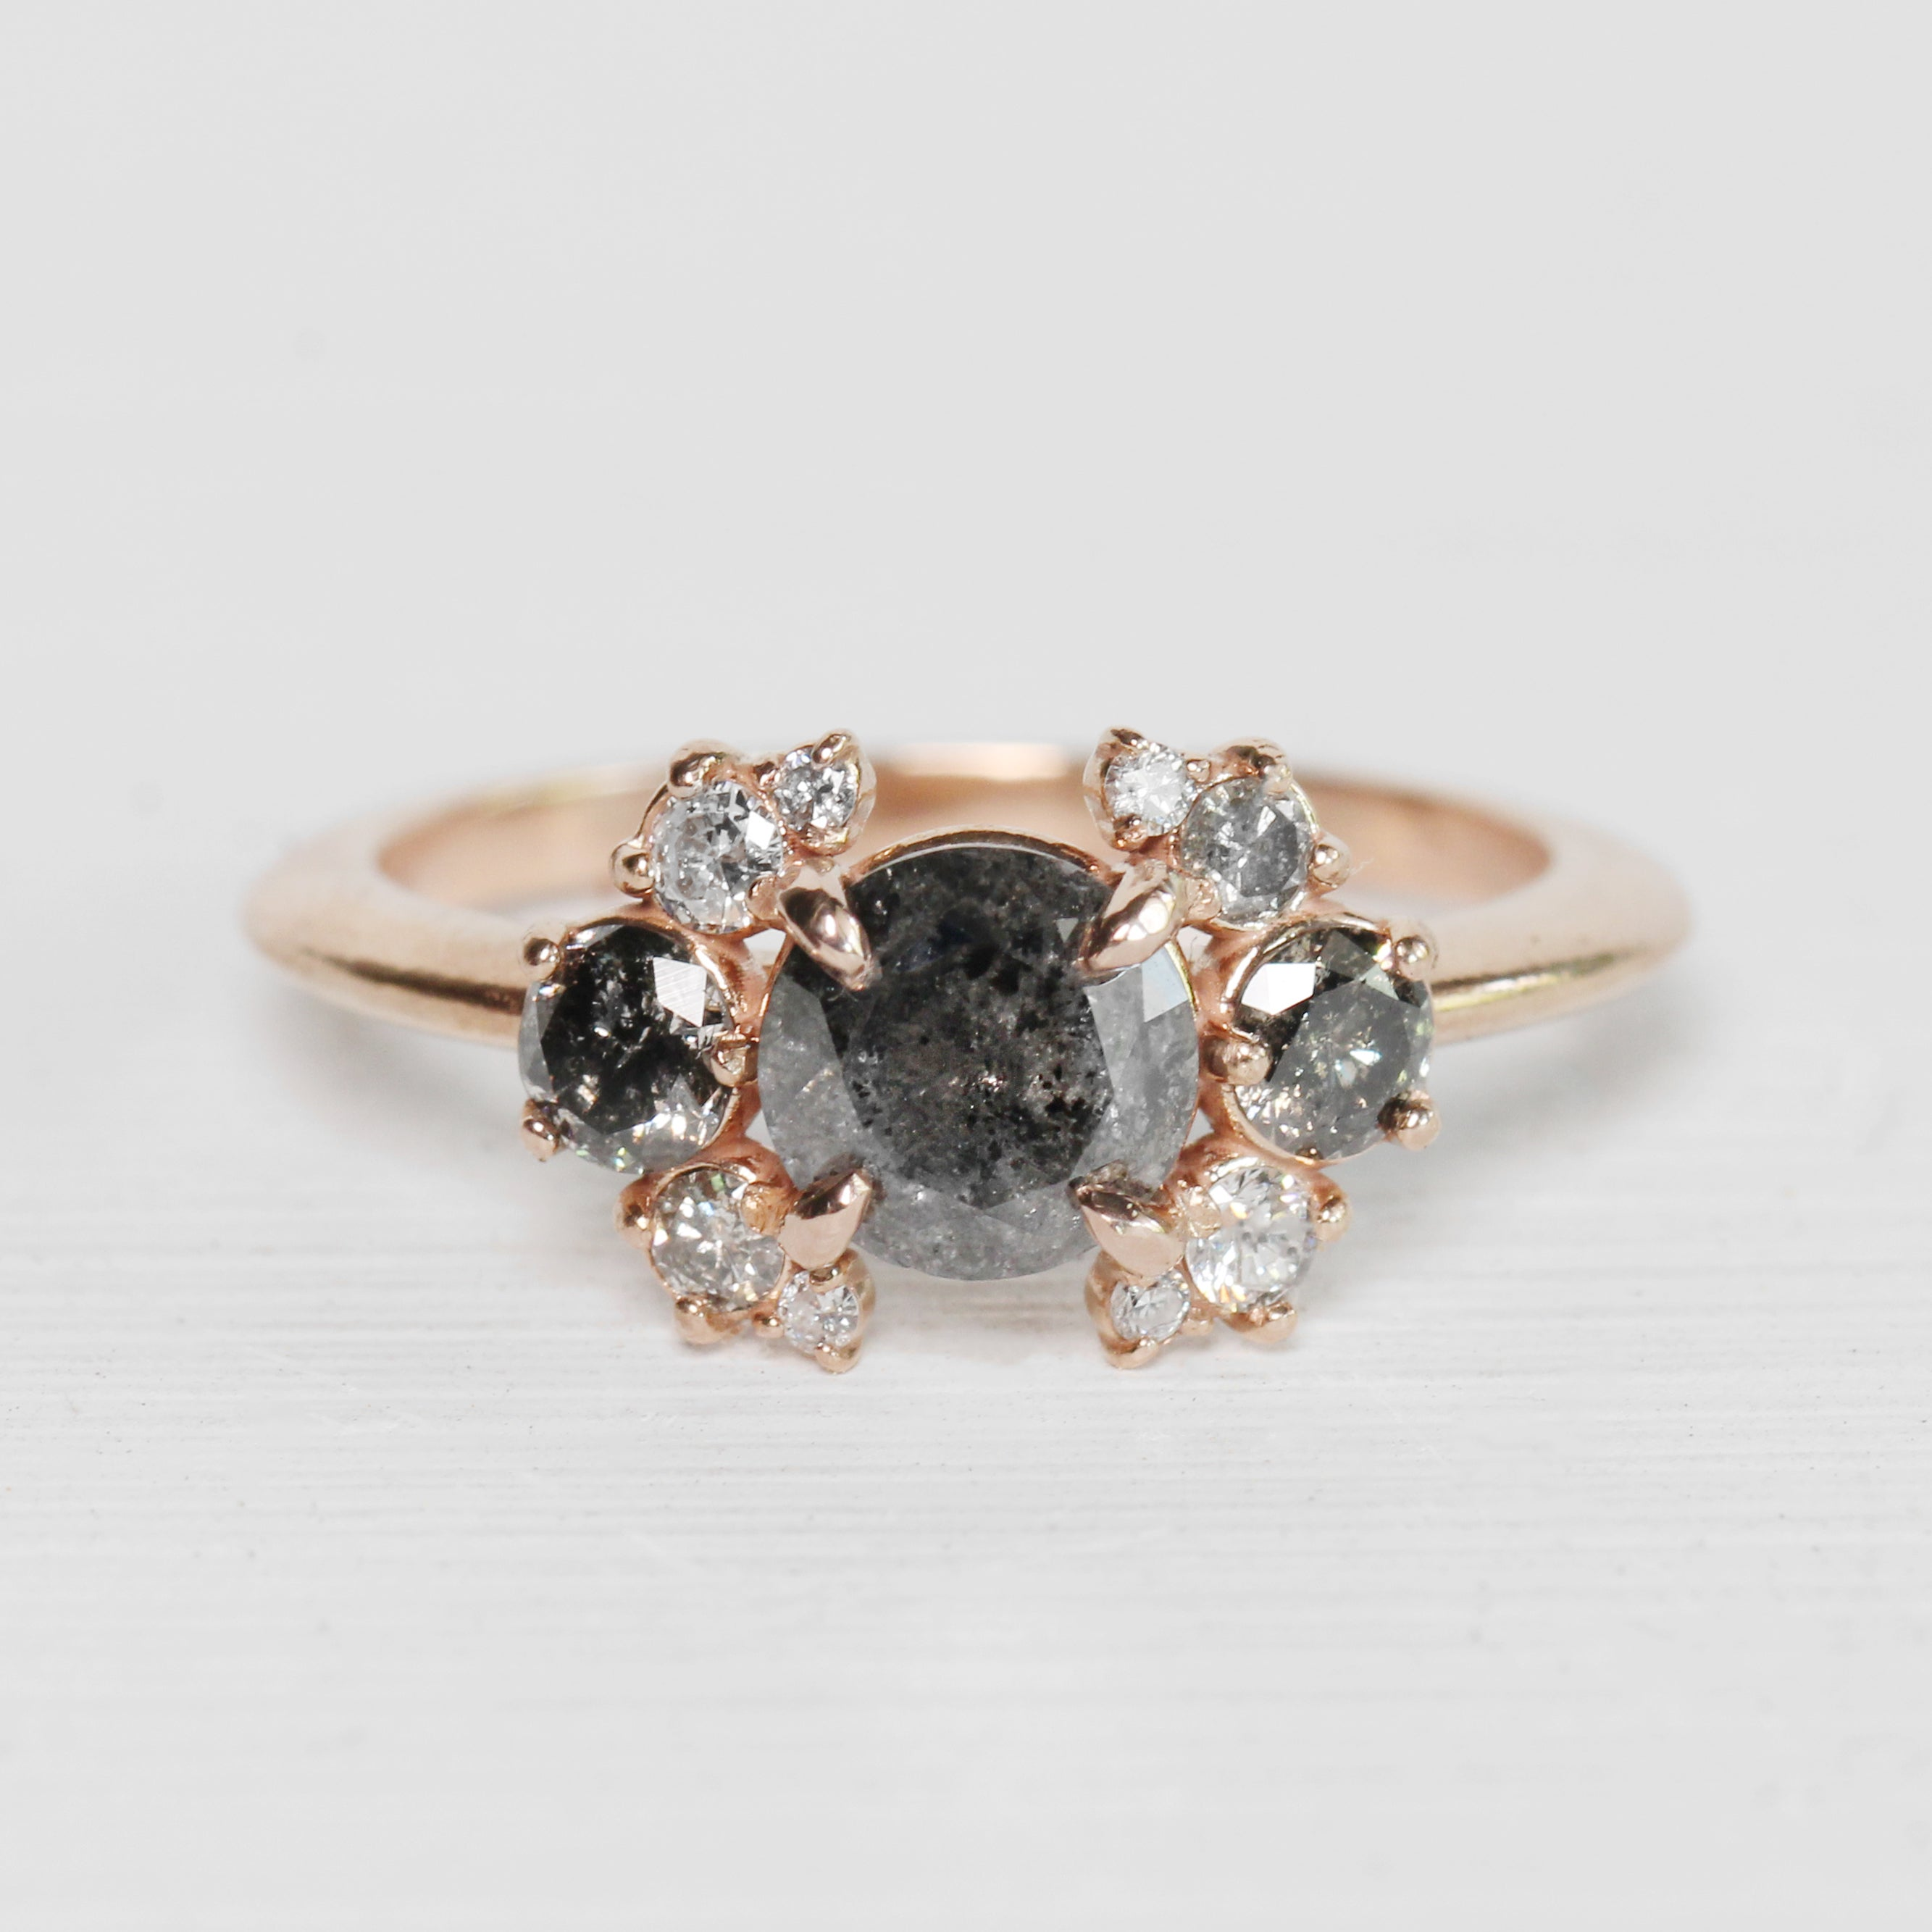 Eira - Diamond Cluster Ring in 10k Rose Gold - Ready to size and ship